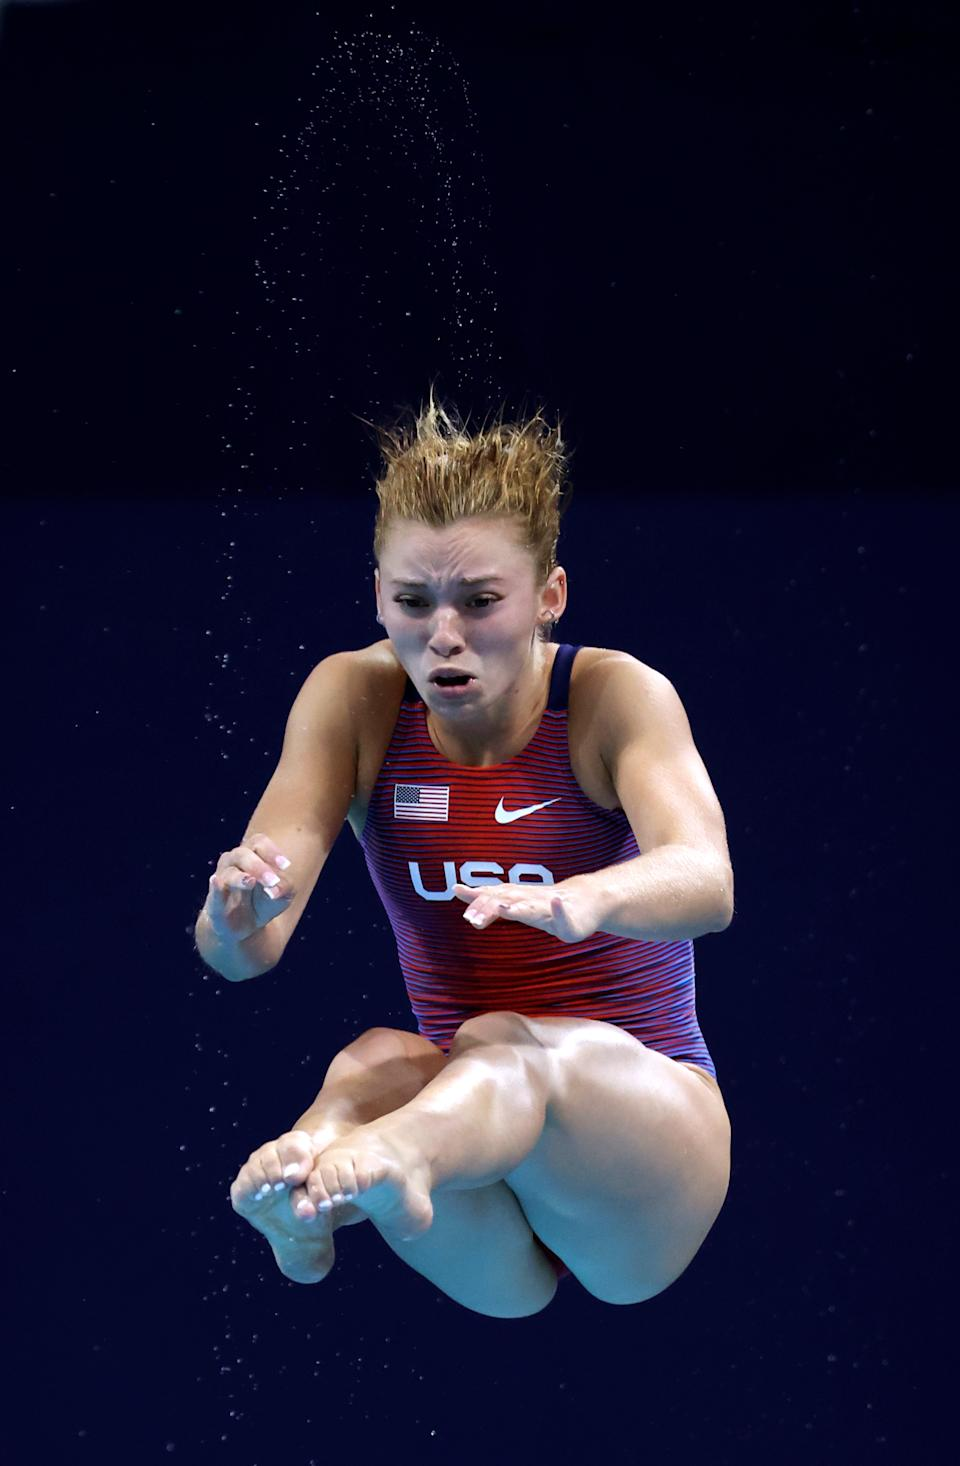 <p>TOKYO, JAPAN - AUGUST 01: Hailey Hernandez of Team United States competes in the Women's 3m Springboard Final on day nine of the Tokyo 2020 Olympic Games at Tokyo Aquatics Centre on August 01, 2021 in Tokyo, Japan. (Photo by Al Bello/Getty Images)</p>